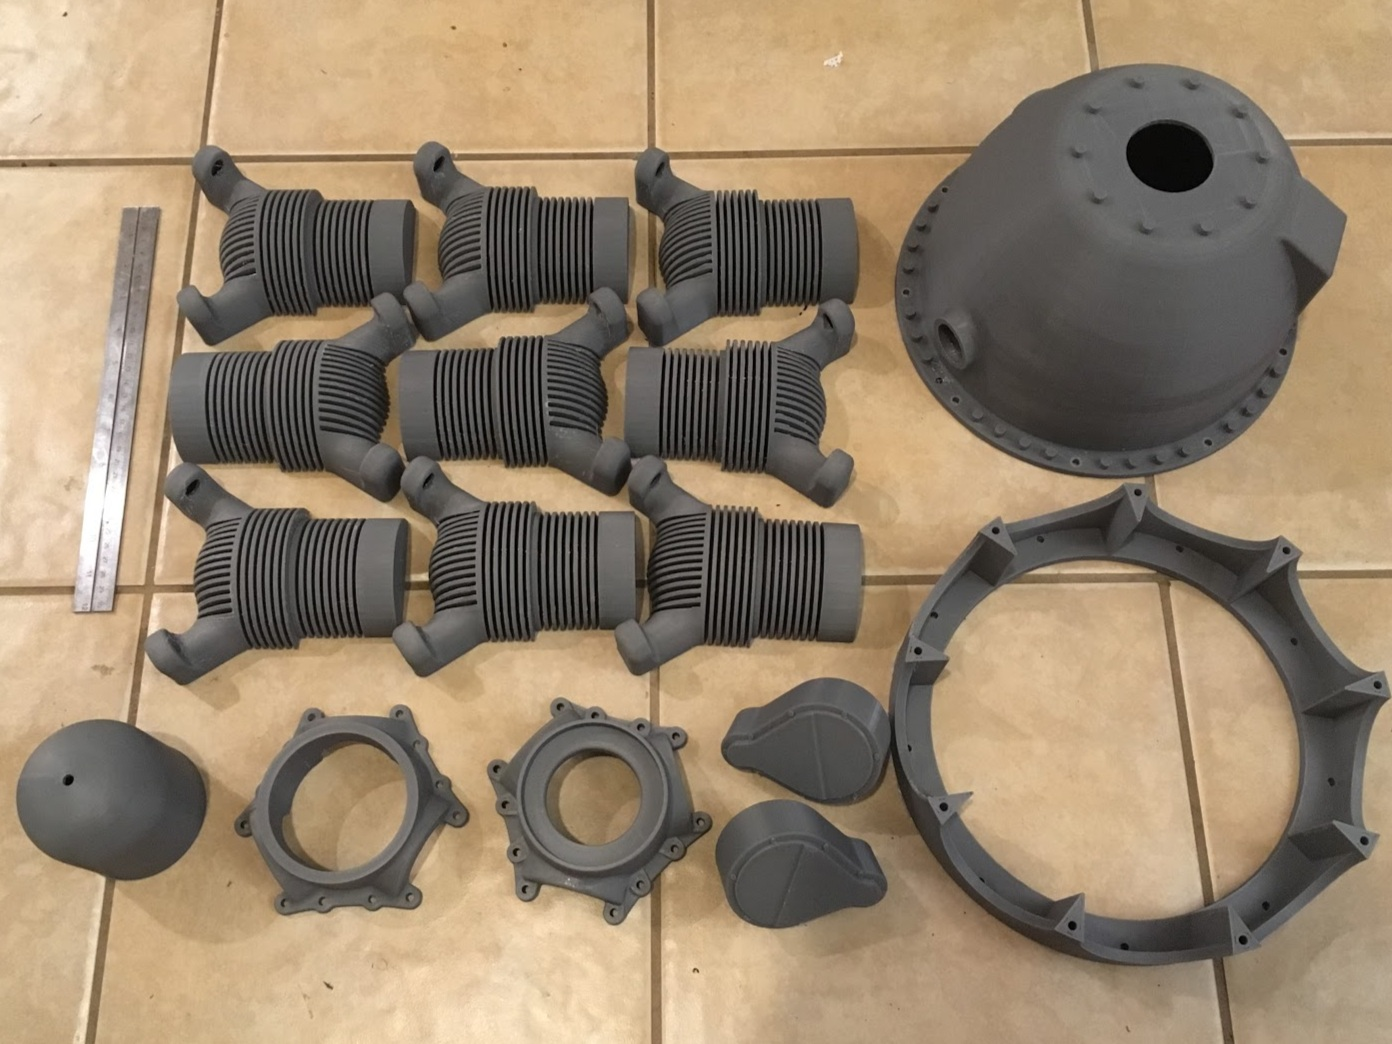 COmponents for Full-Size Replica of WW2 Prop Plane Engine - ABS, 100 micron